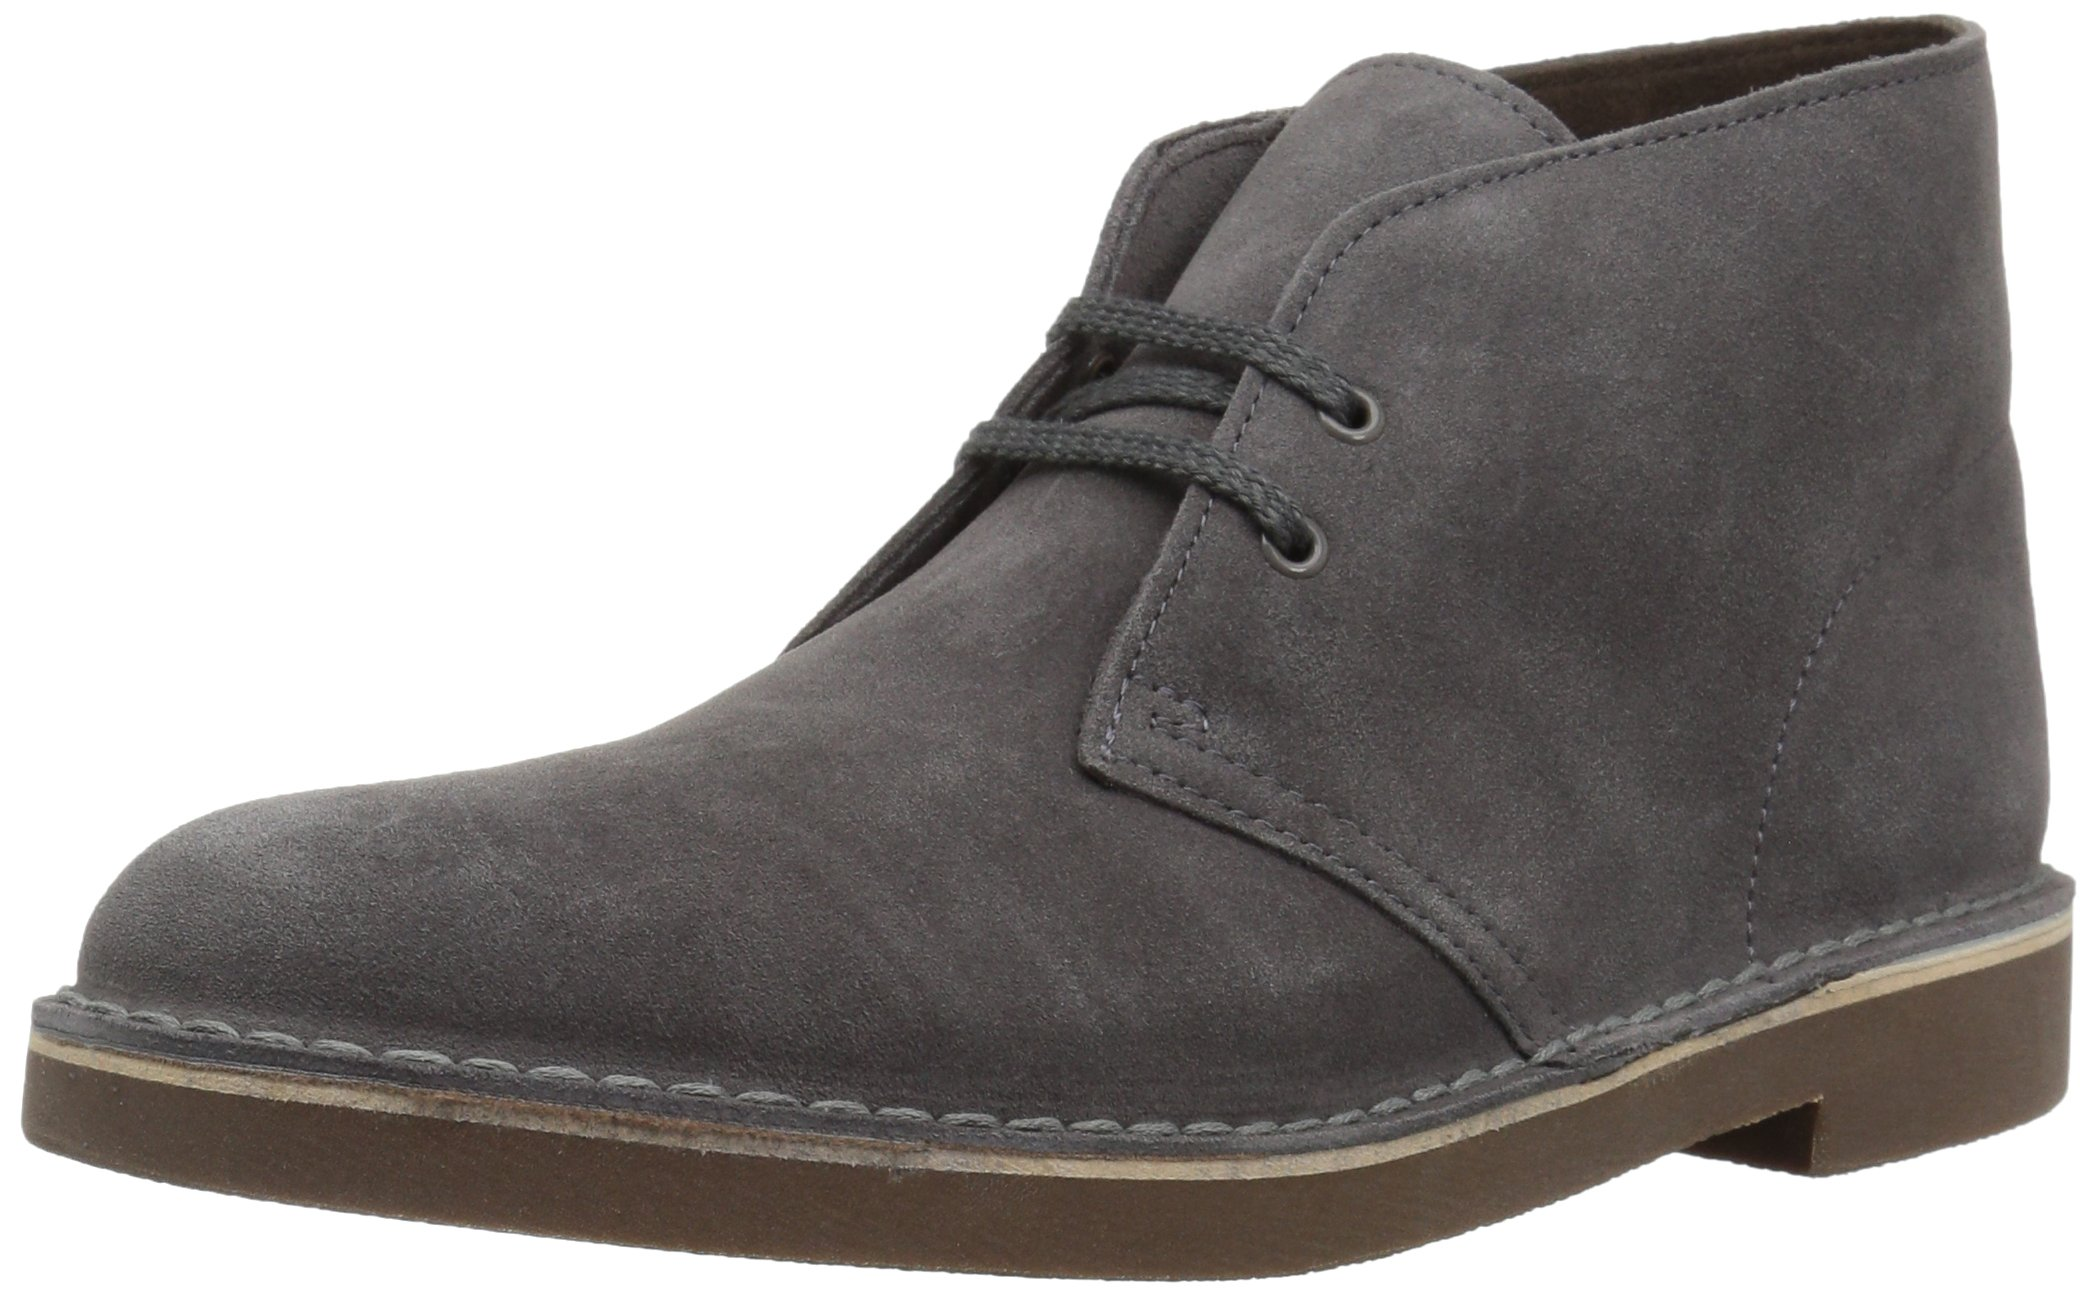 CLARKS Men's Bushacre 2 Boot, Greystone Suede, 13 Medium US by CLARKS